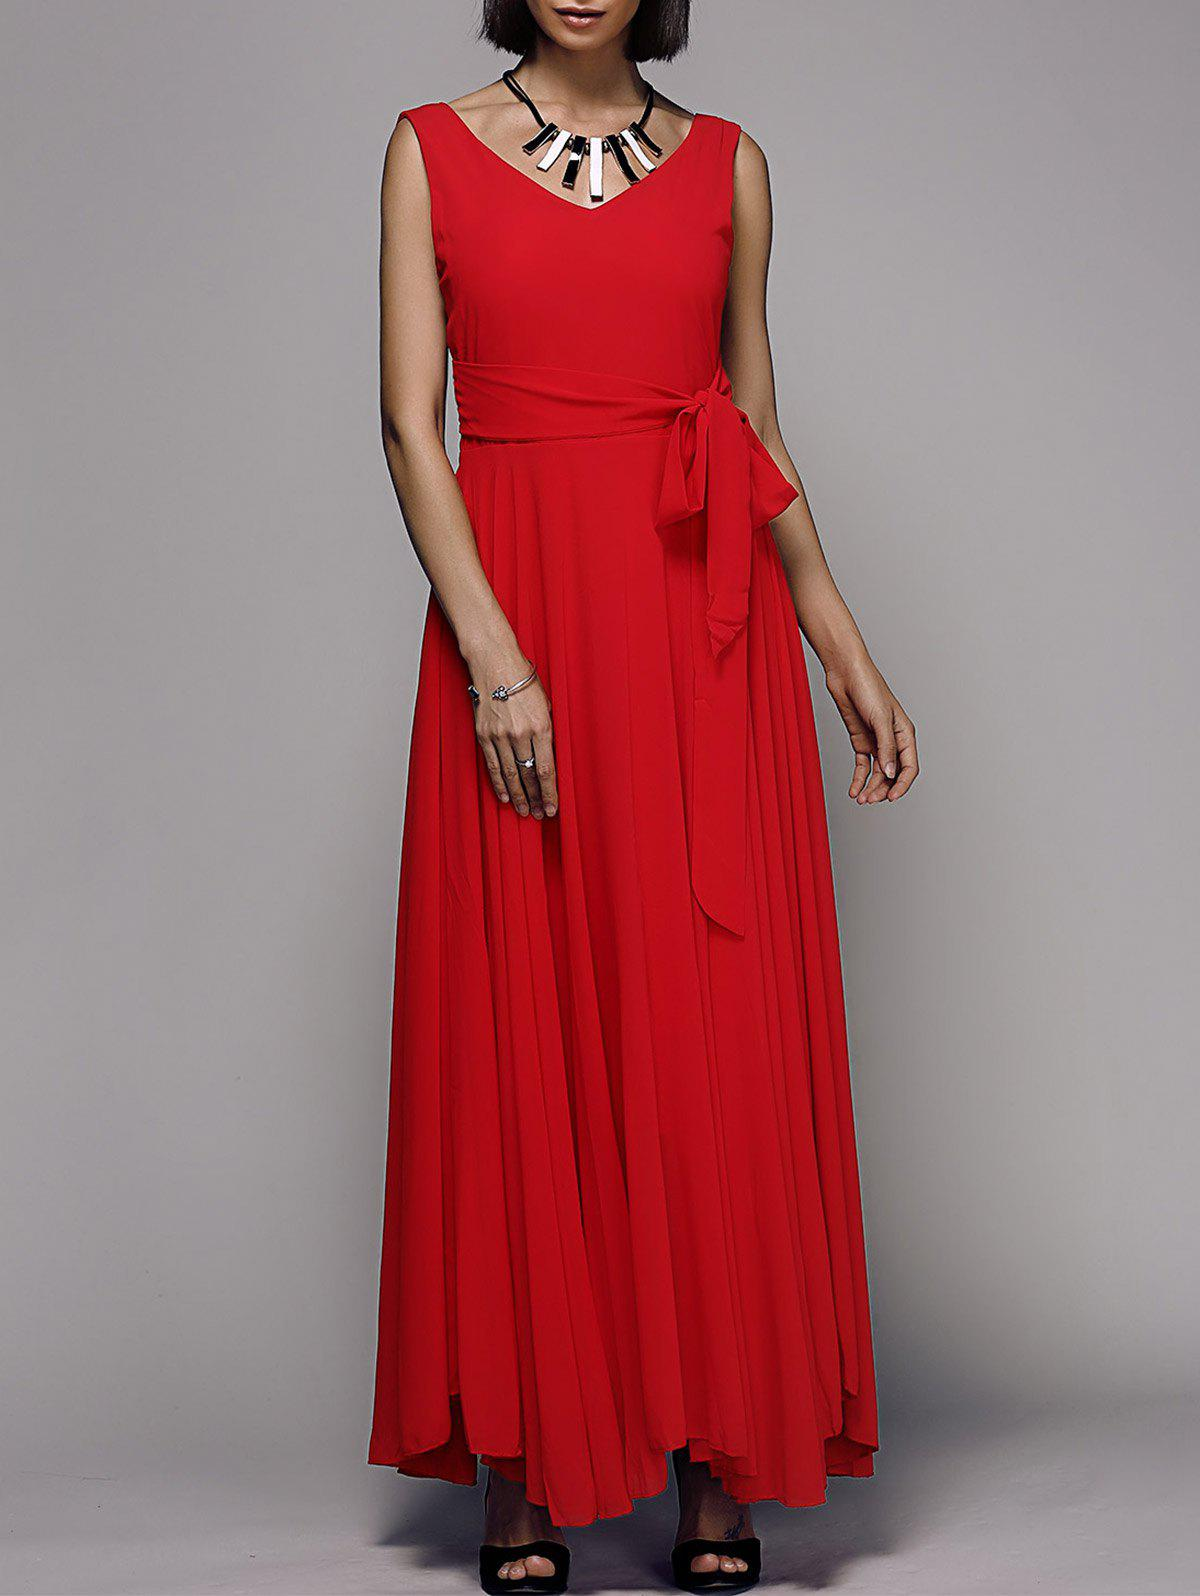 Elegant Solid Color Sleeveless V-Neck Womens Chiffon DressWomen<br><br><br>Size: M<br>Color: RED